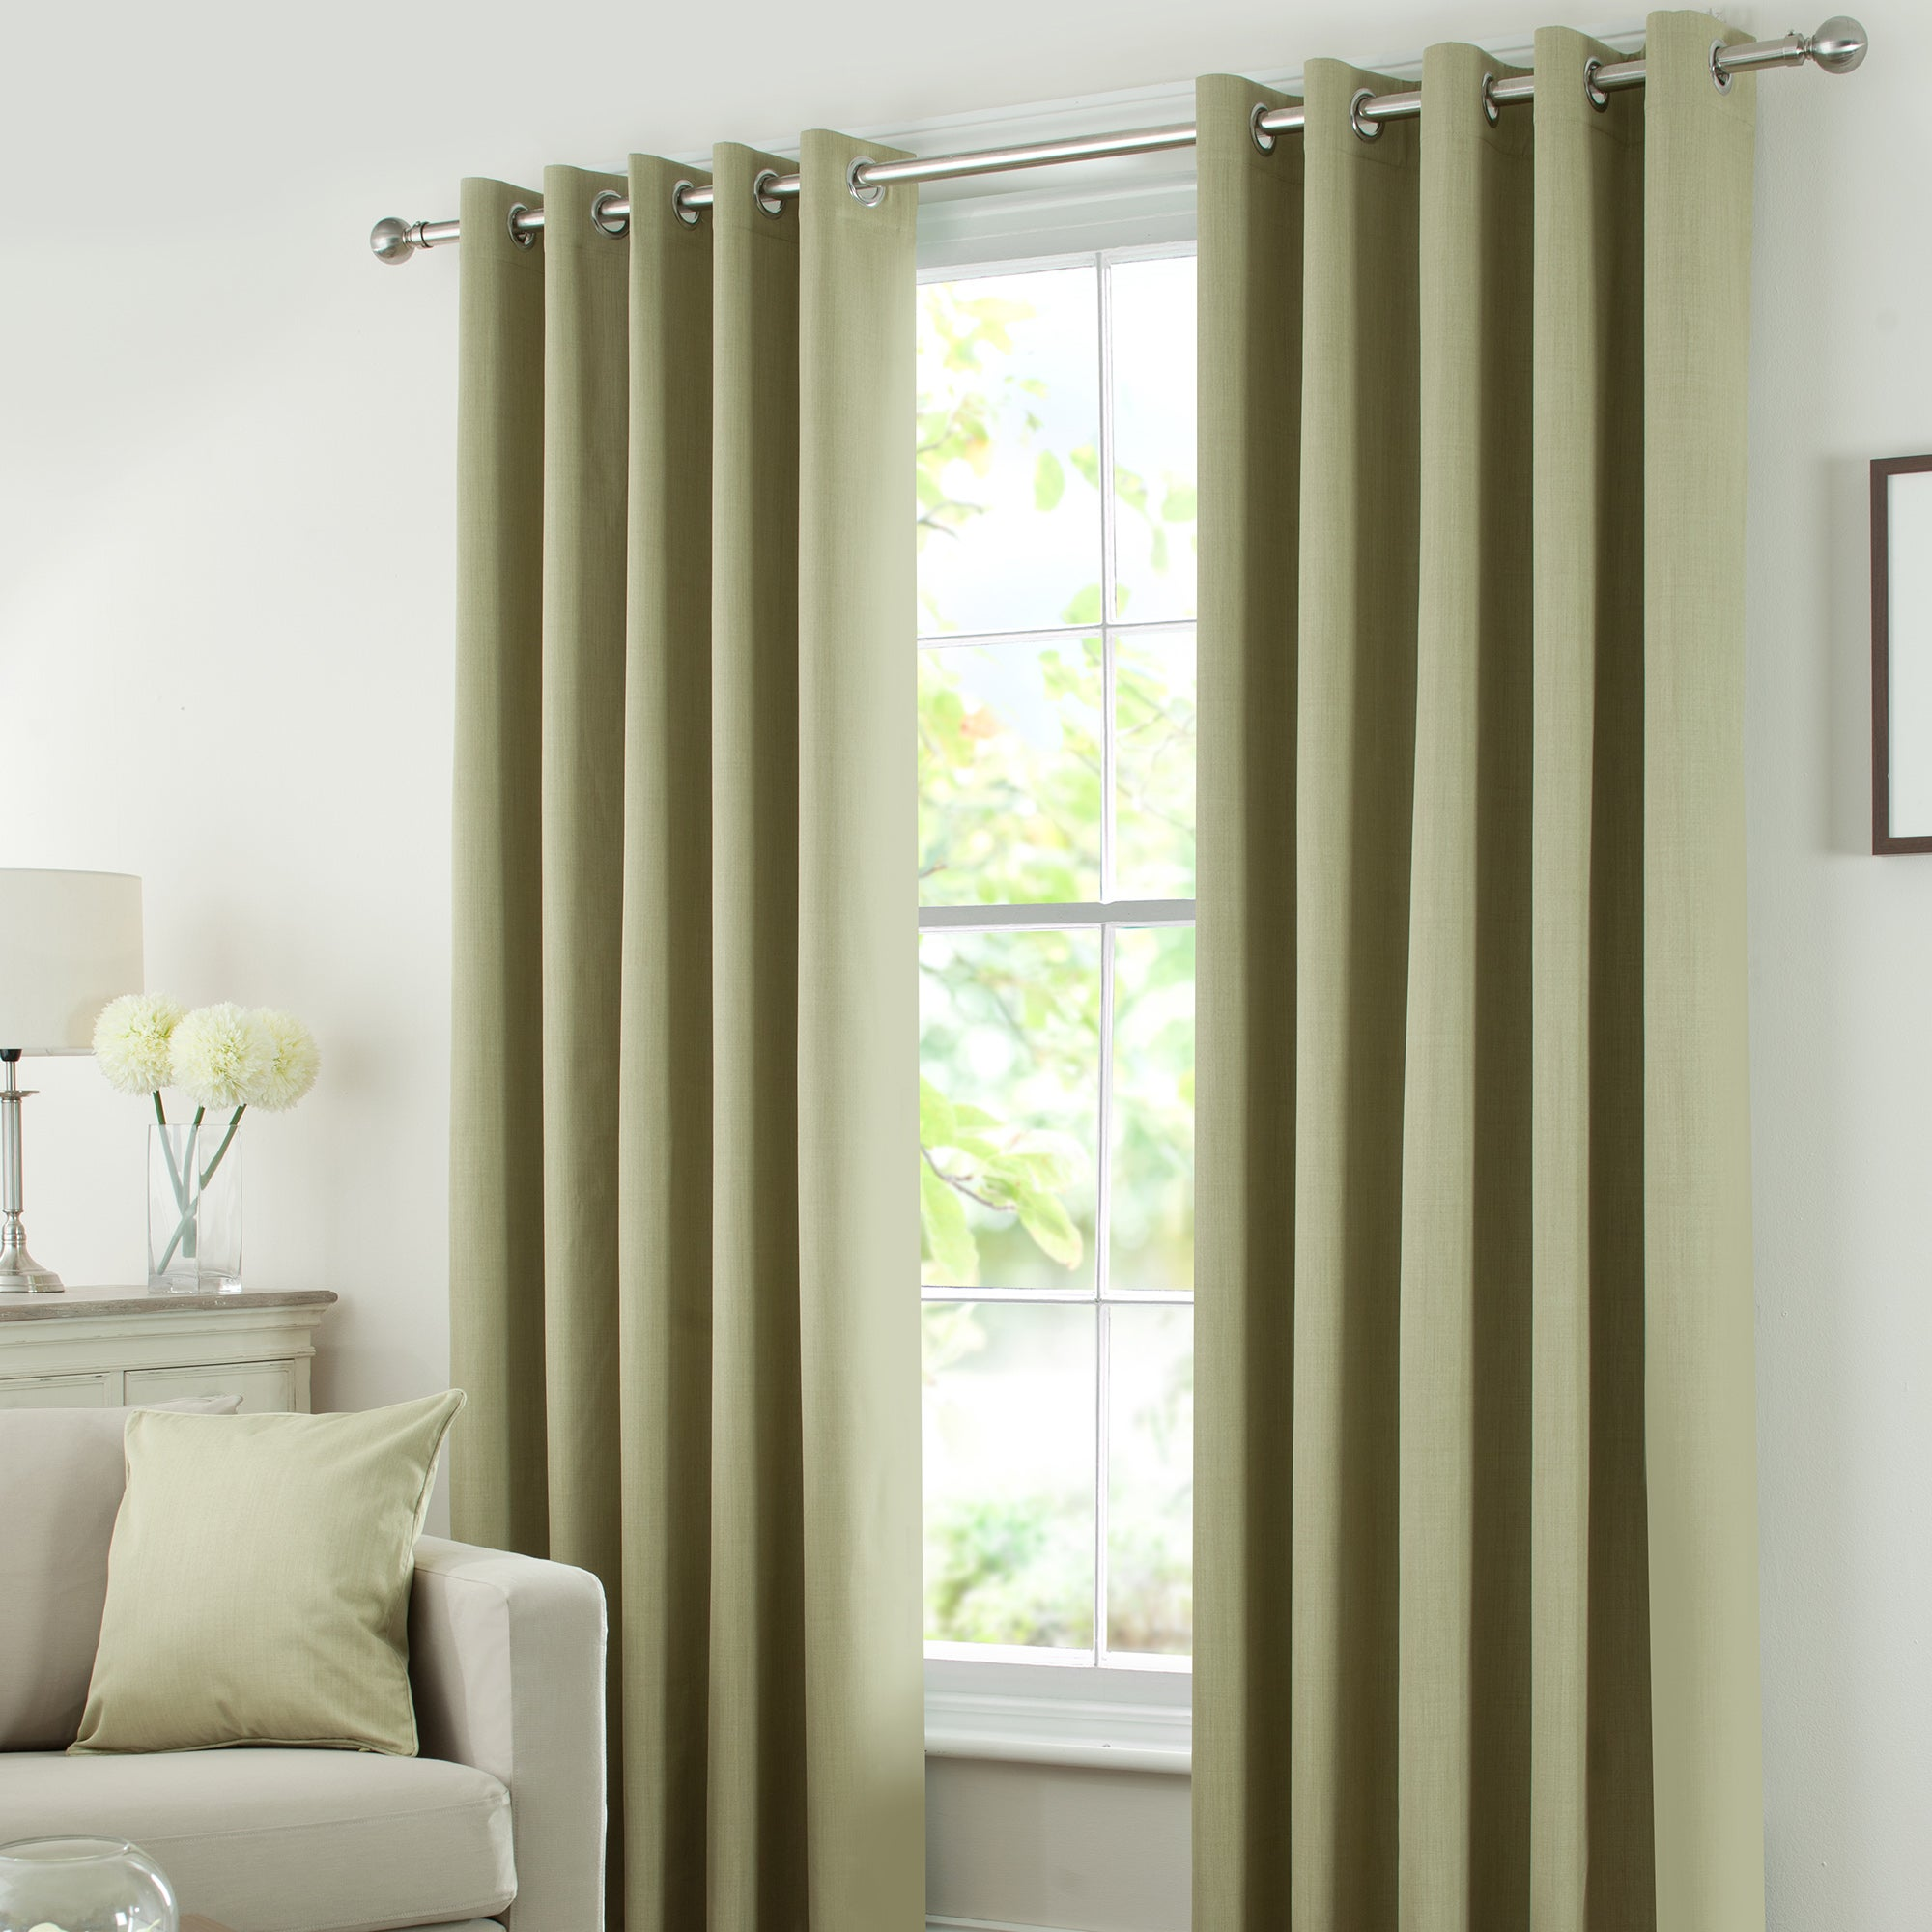 Waters and Noble Green Solar Eyelet Curtain Collection